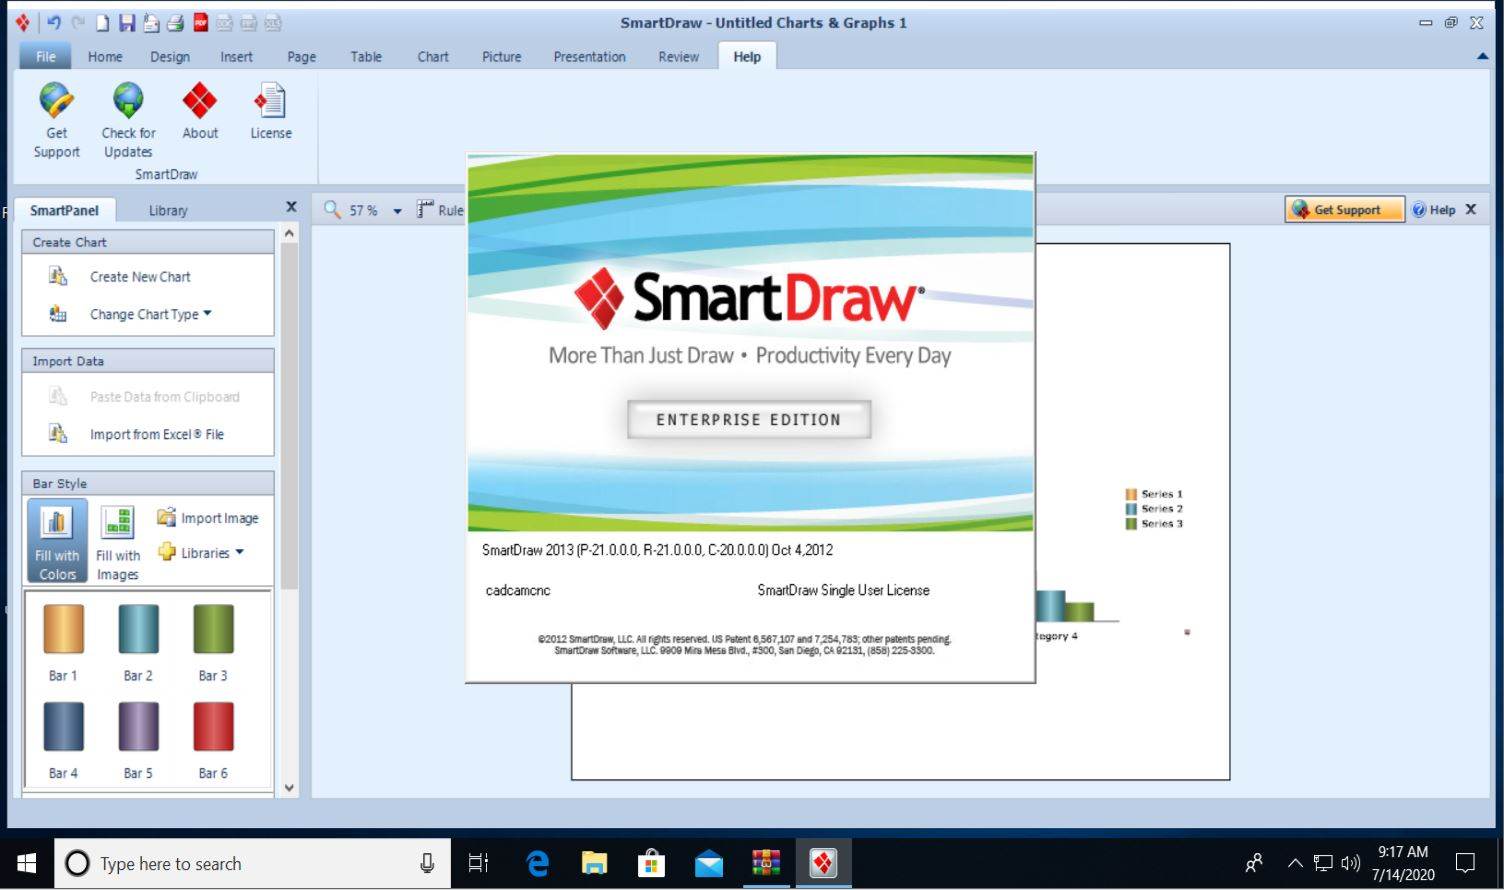 Working with SmartDraw 2013 Enterprise full license